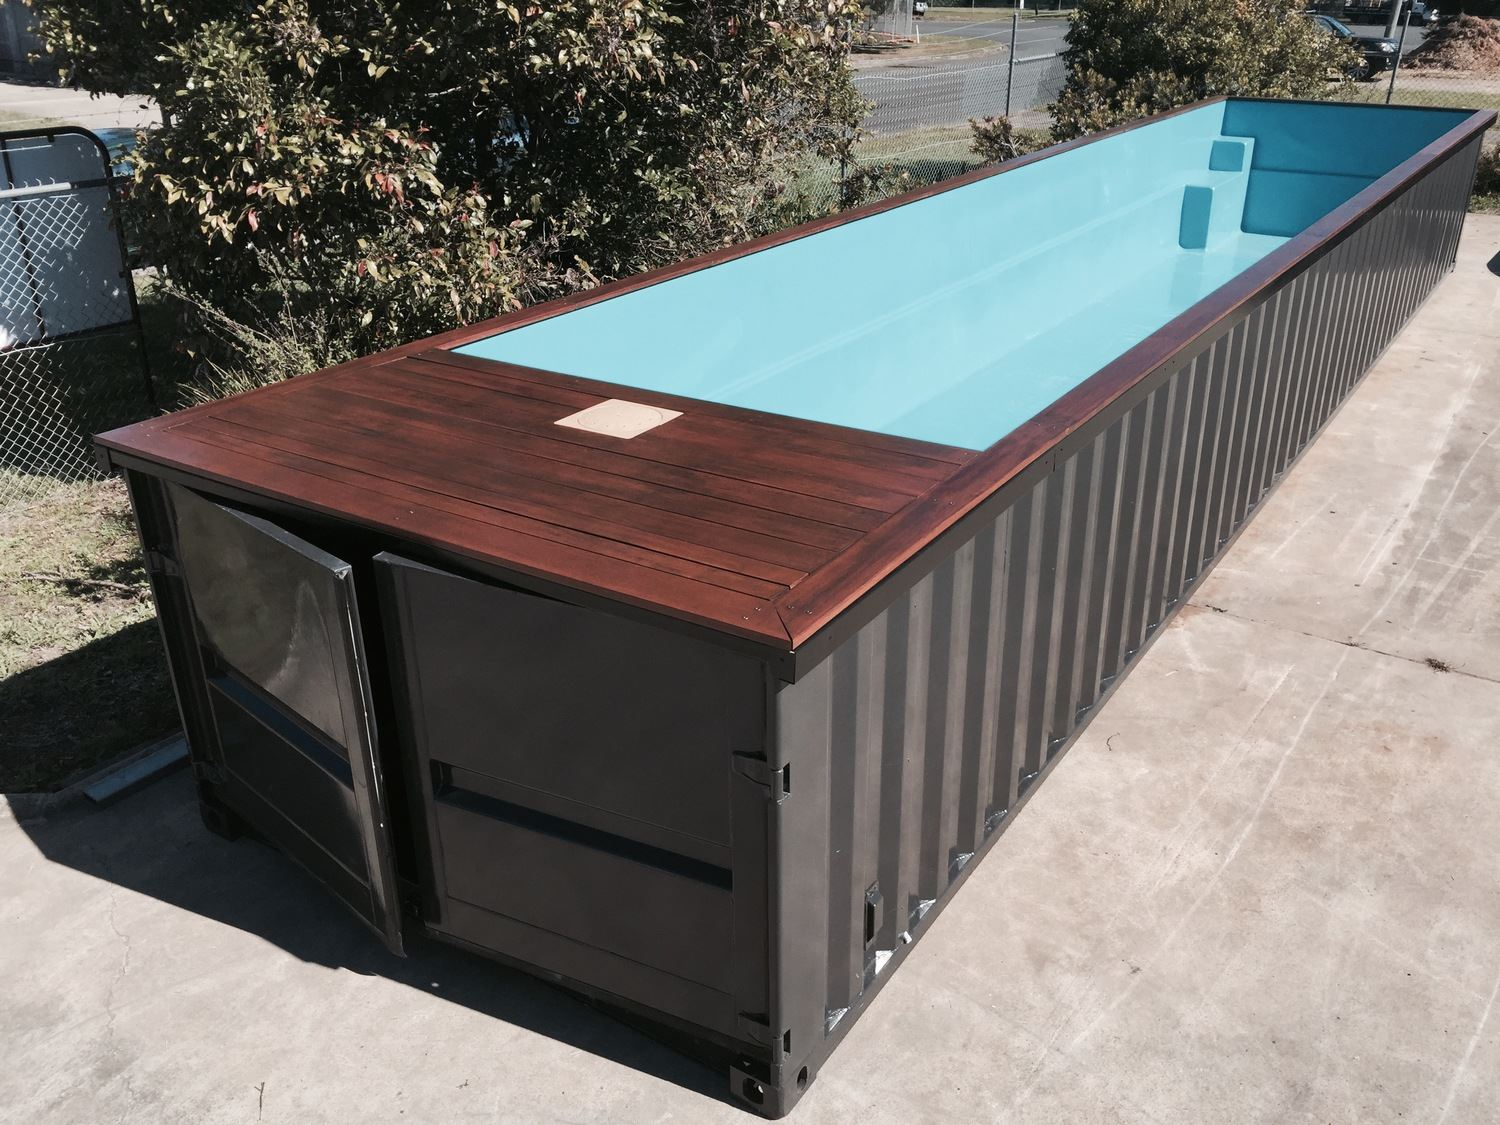 Piscine en container maritime mouvbox france for Container maritime prix